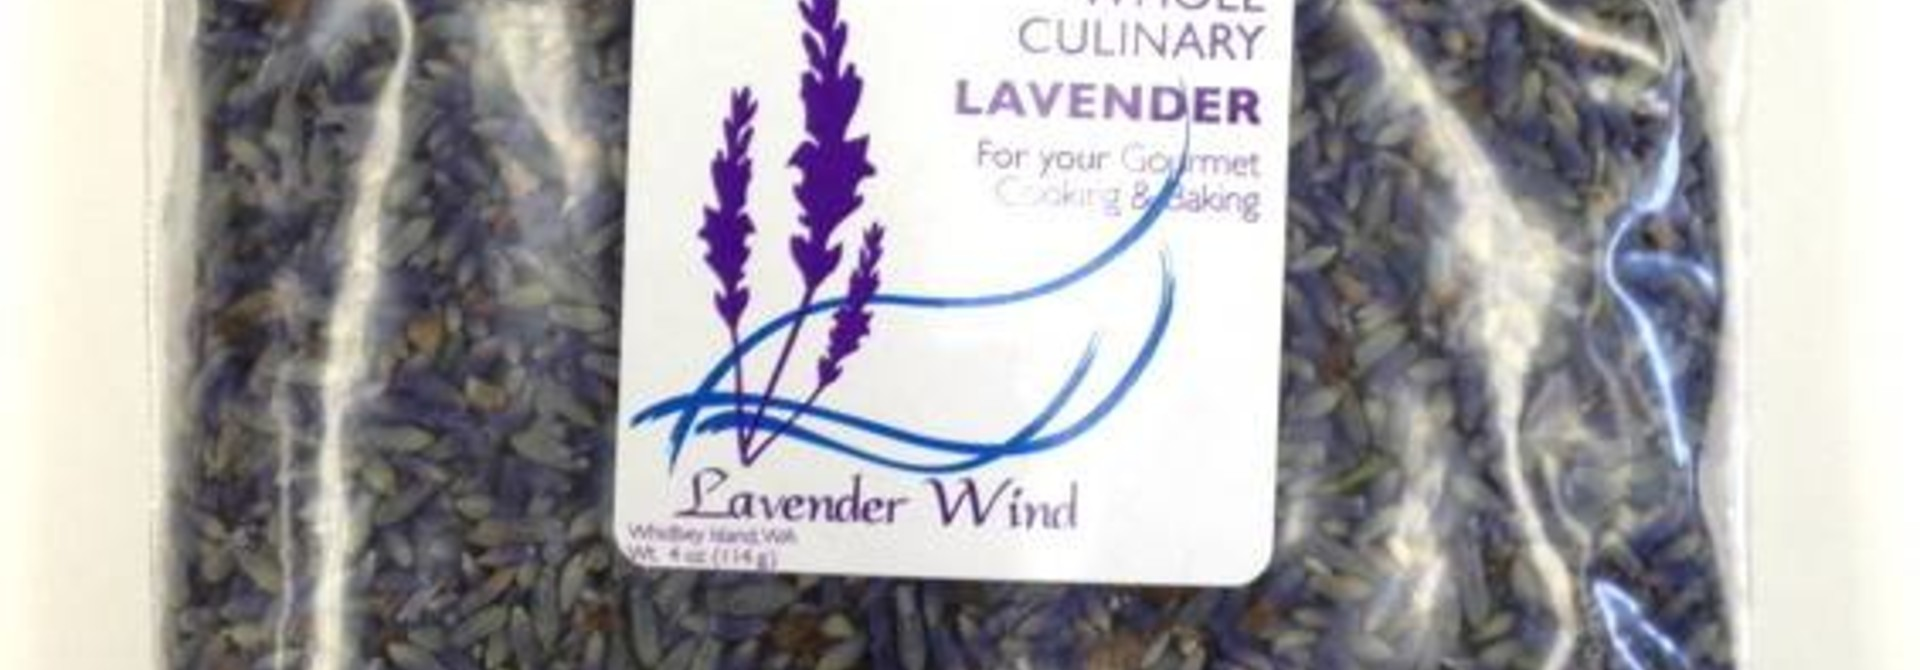 Whole Culinary Lavender Blend - 4 oz.